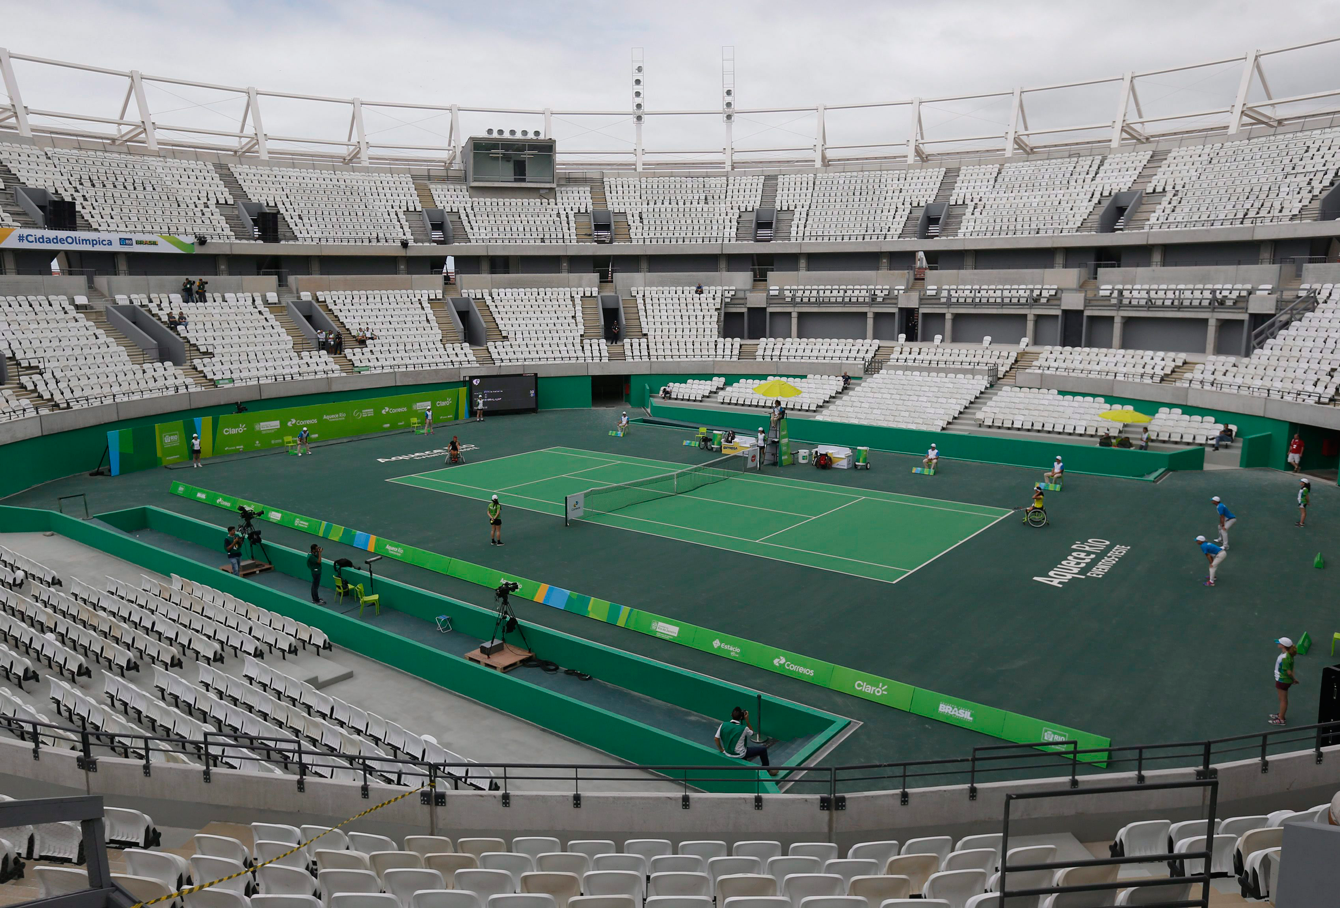 Brazil's Paralympic athletes compete during the tennis test event at Olympics Tennis Center. (Photo: AP/Silvia Izquierdo)